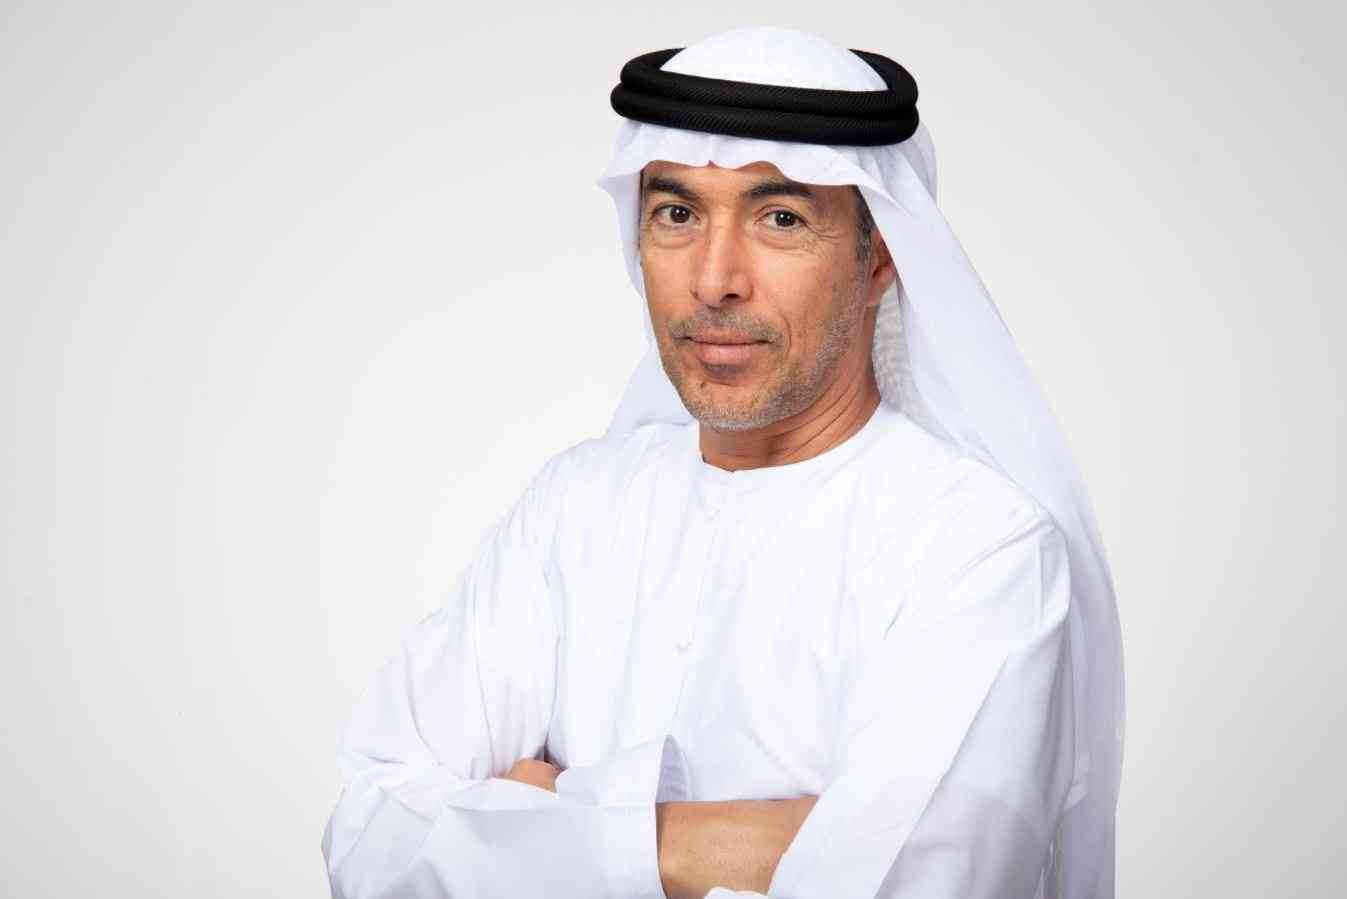 Governor of the Central Bank of the Emirates: The UAE dirham will become an international currency